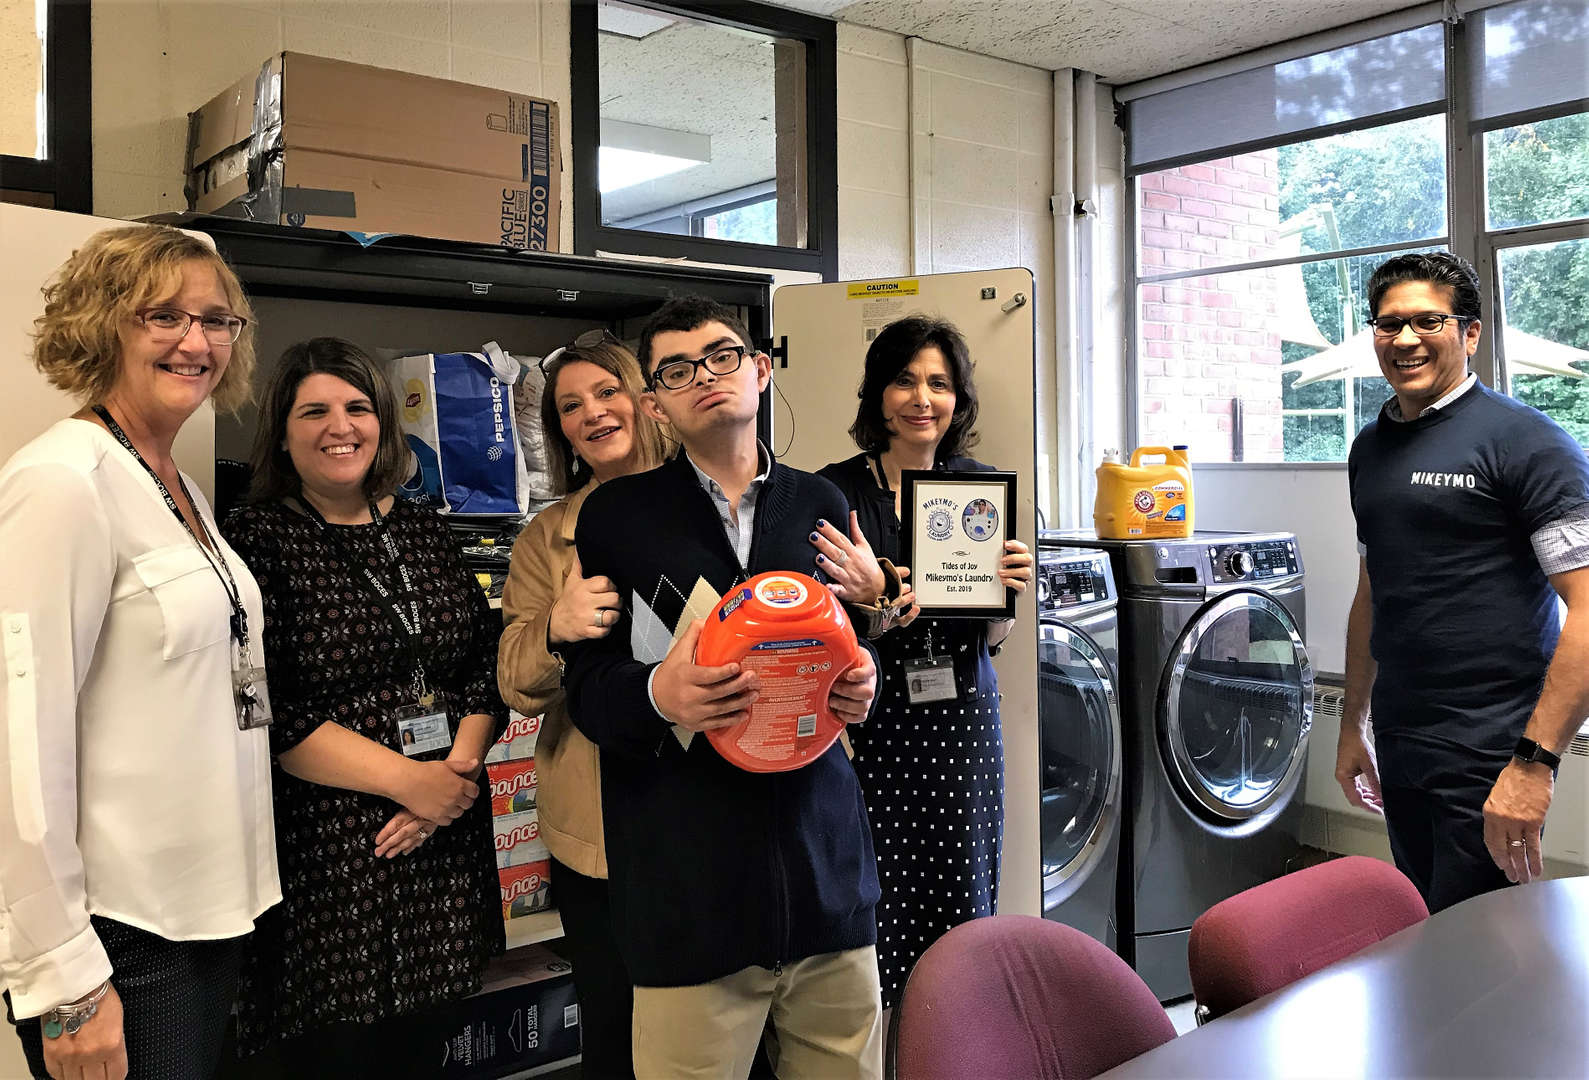 Student Michael Wishner poses with school administrators and teachers in the laundry room.